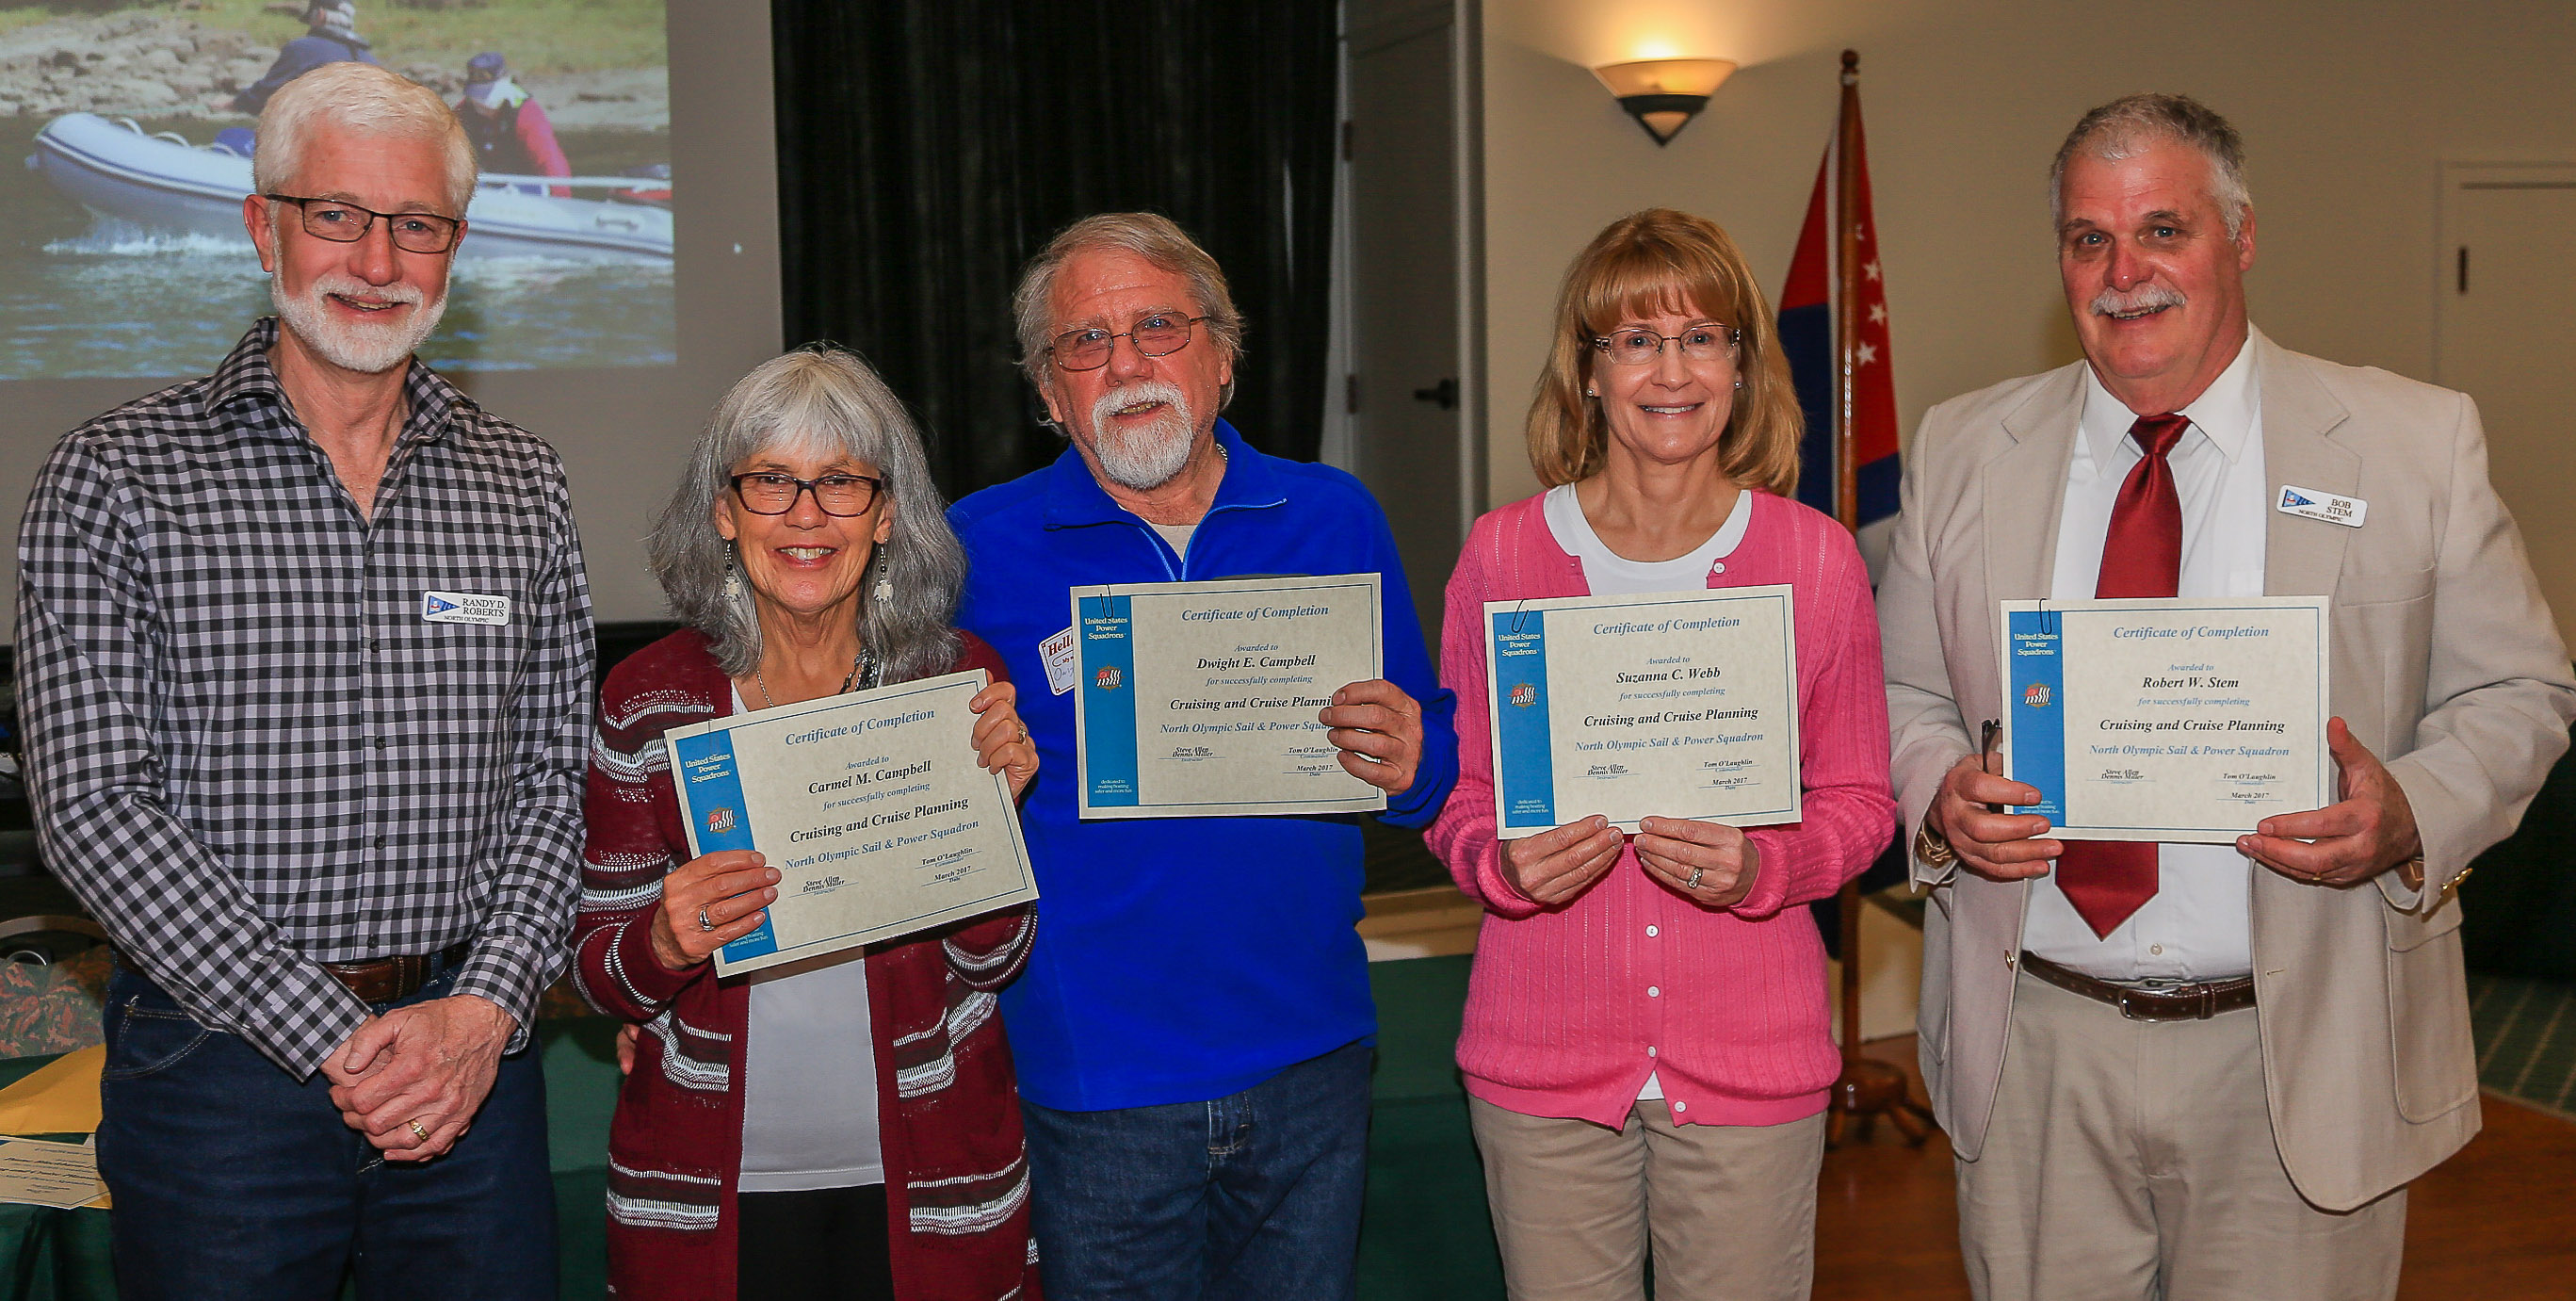 Carmel & Dwight Campbell, Susy Webb, Don Stem receive Cruise & Cruise Planning